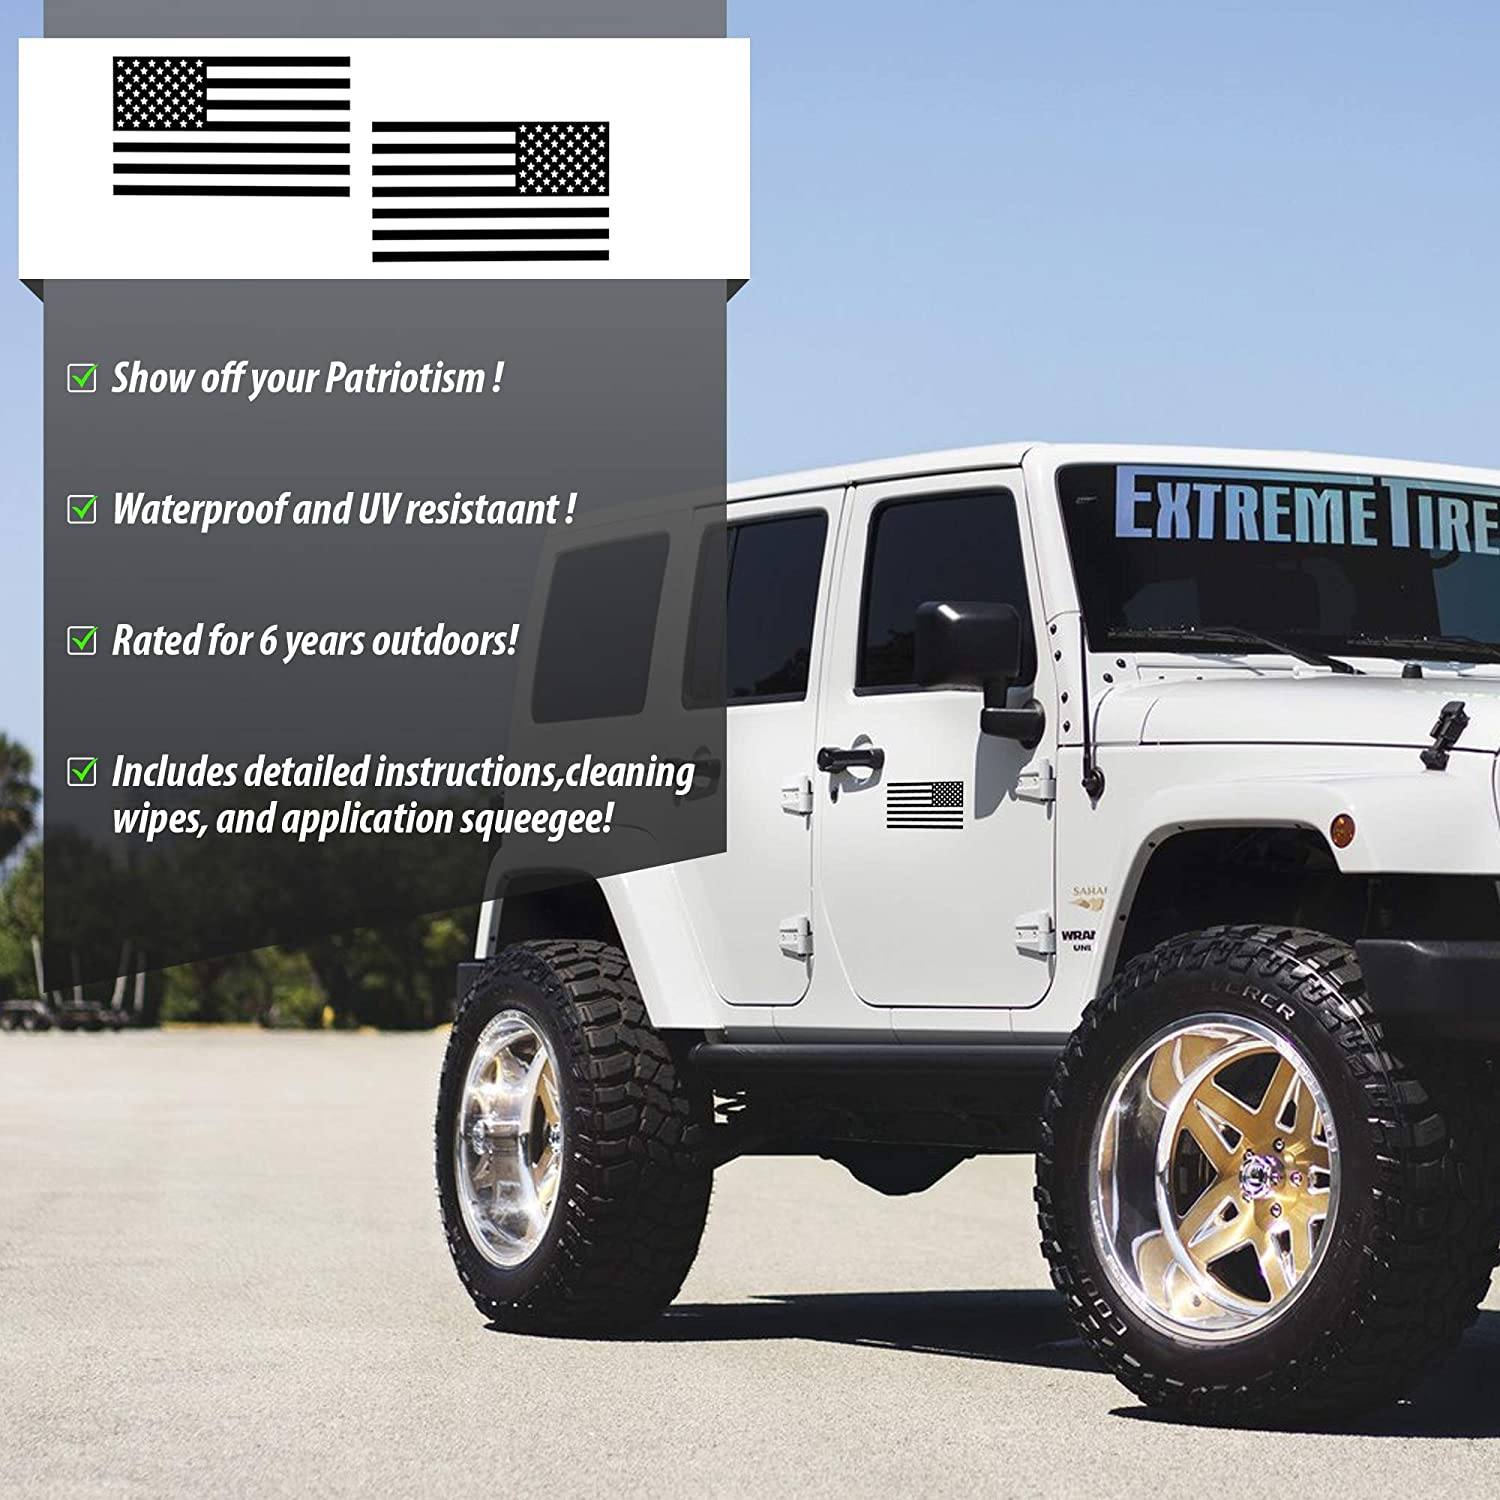 Truck Bumper 3x5.5 Hat BriCals Vinyl Decals Flat Matte Black Subdued American Flag Car and Truck Window Decal Sticker Laptop Great for Car etc Made in America 2 Pack Window Helmet